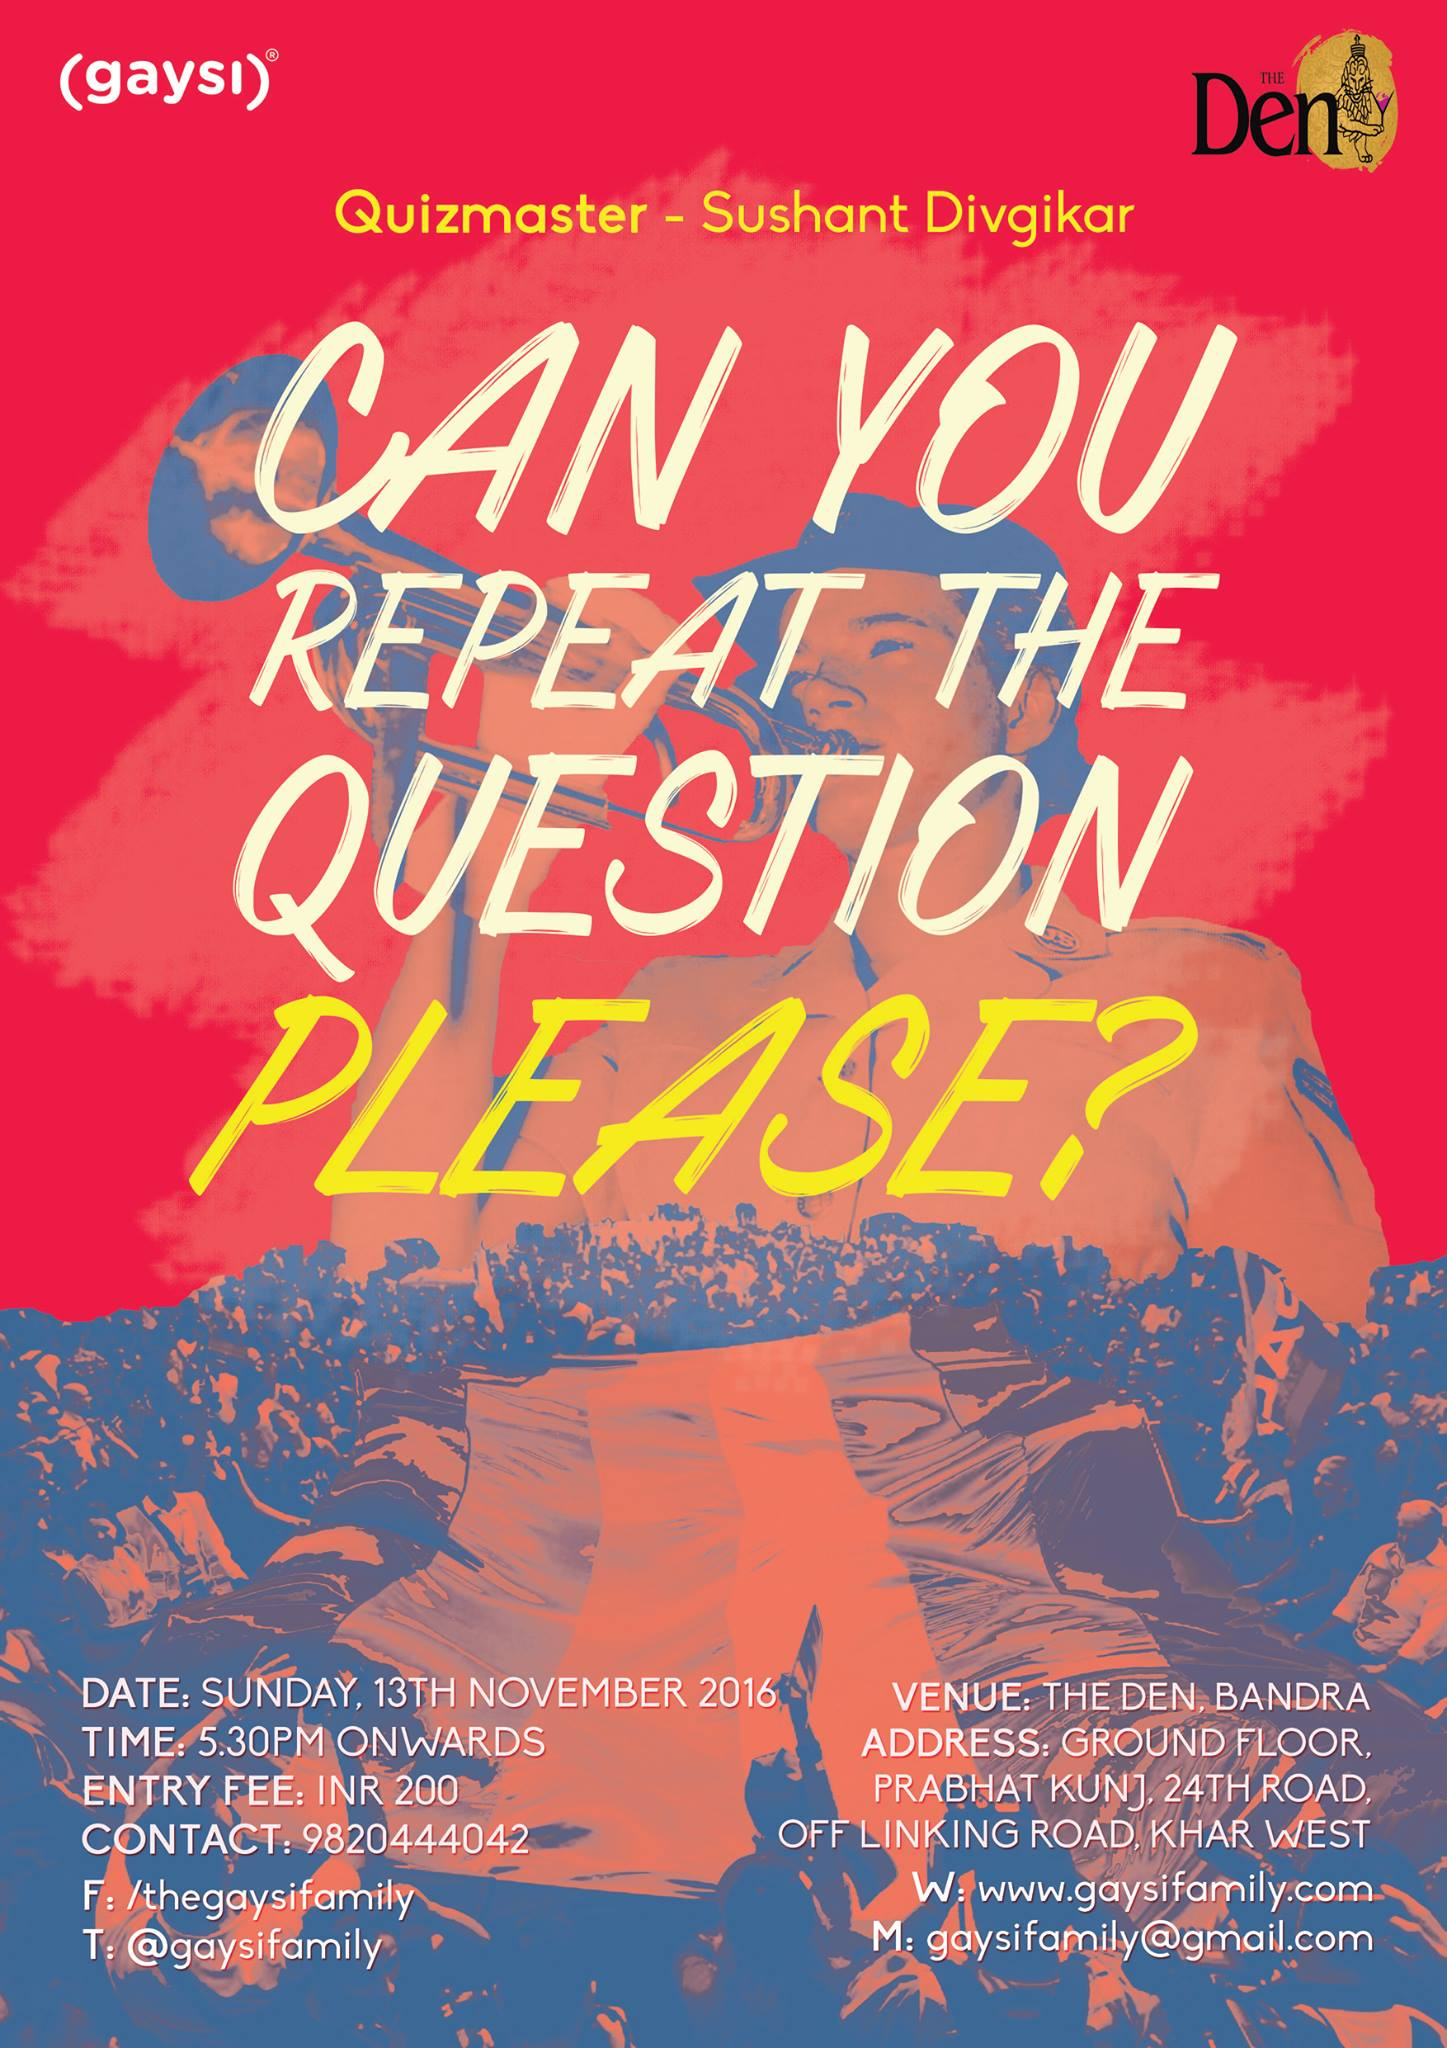 LGBTQ Trivia Sunday: Can You Repeat The Question Please?